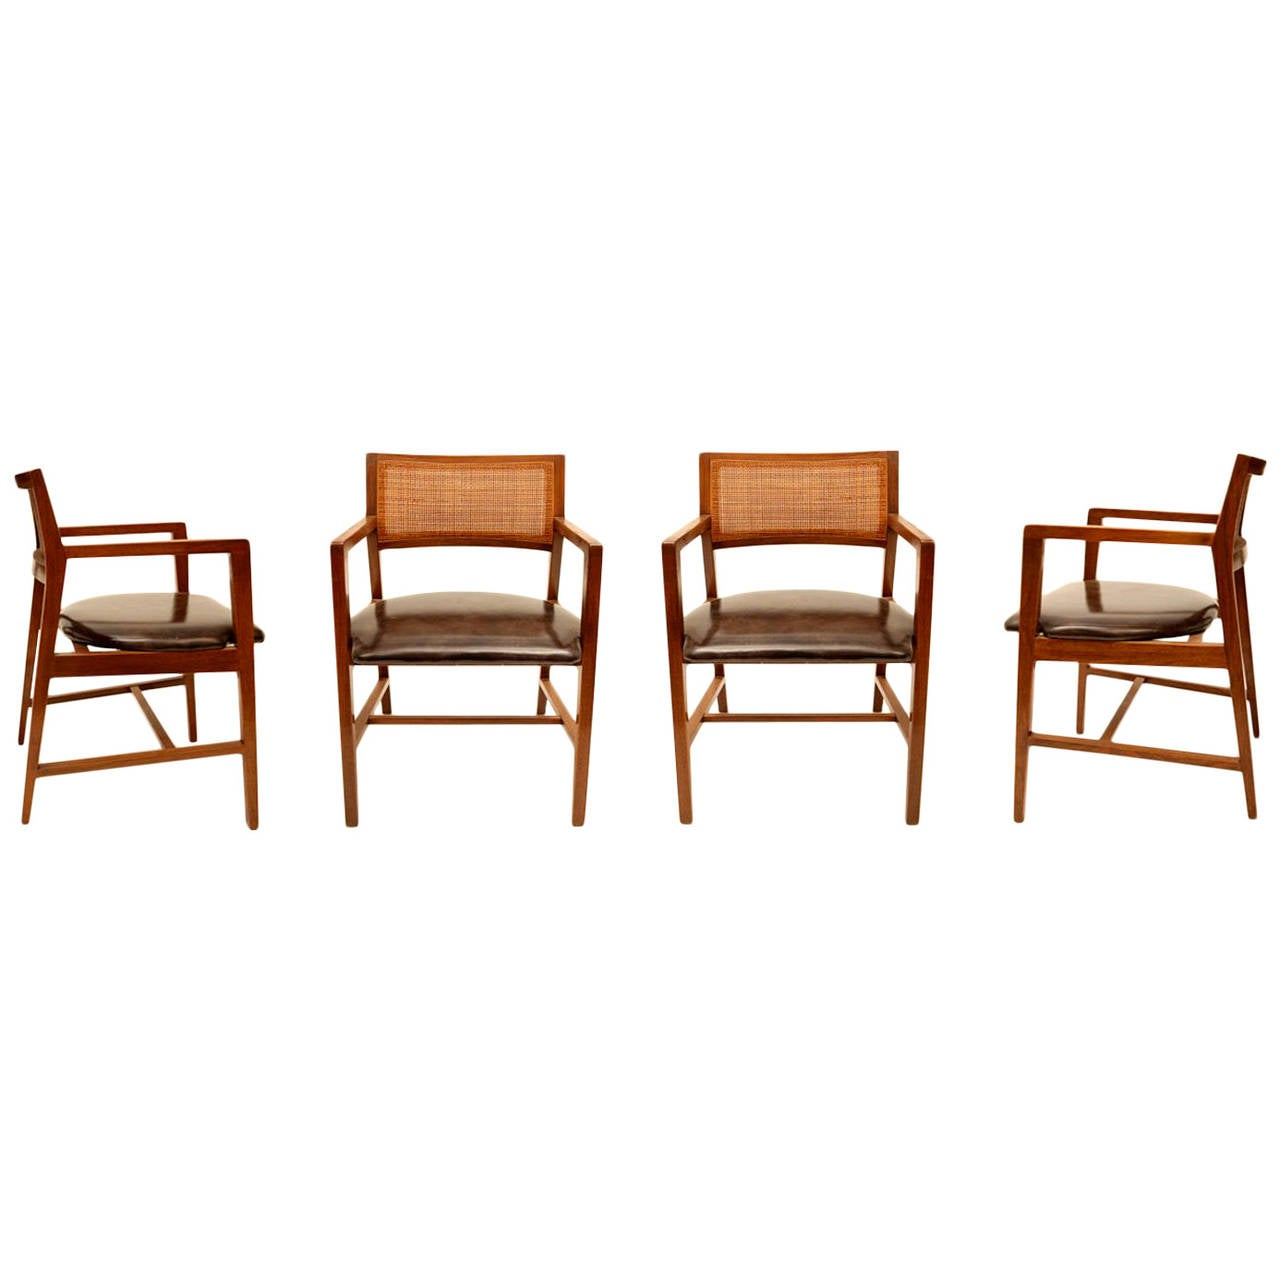 Set of Four Dining Chairs by Edward Wormley for Dunbar